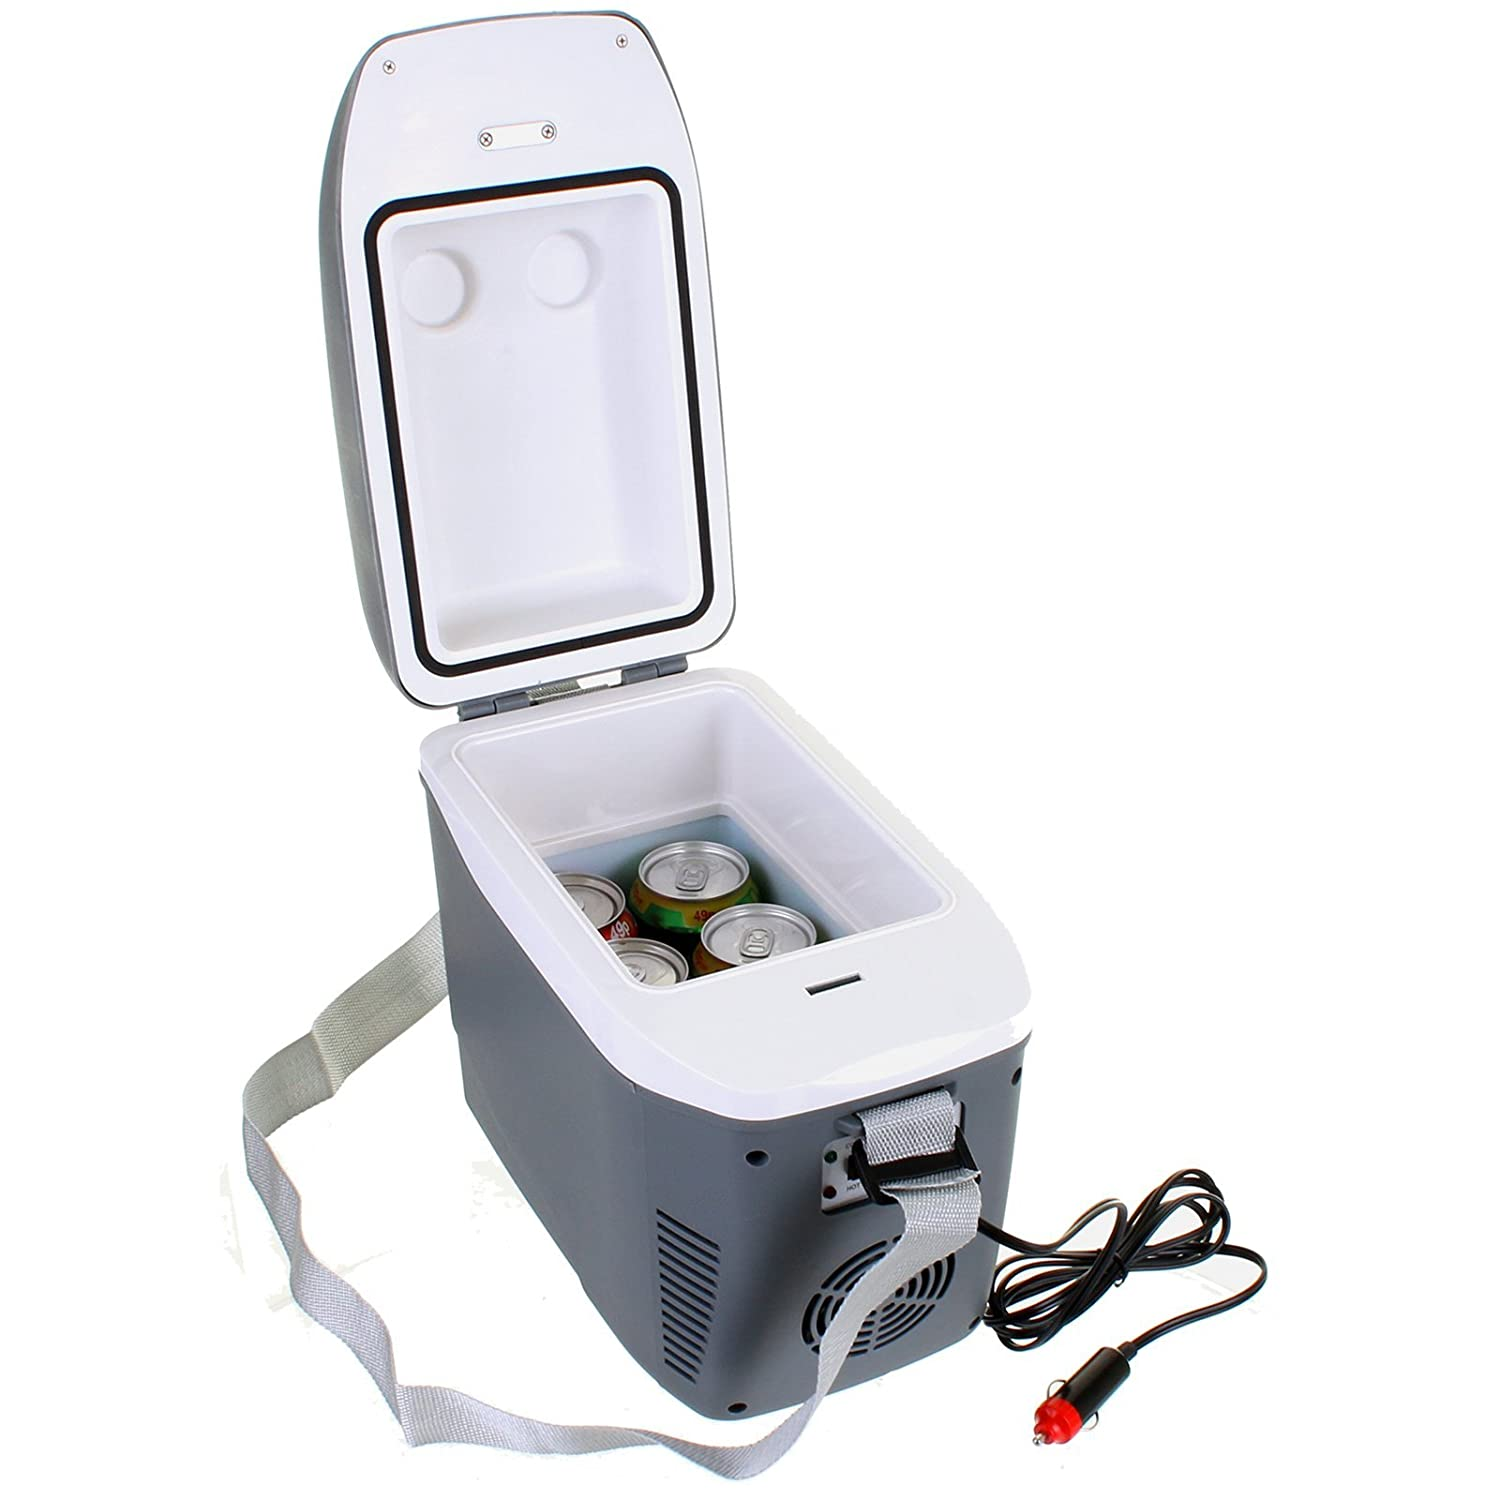 fffa348574e Marko Auto Accessories Coolbox In Car Cooler Vehicle Portable Cool Box  Camping Electrical 12V DC